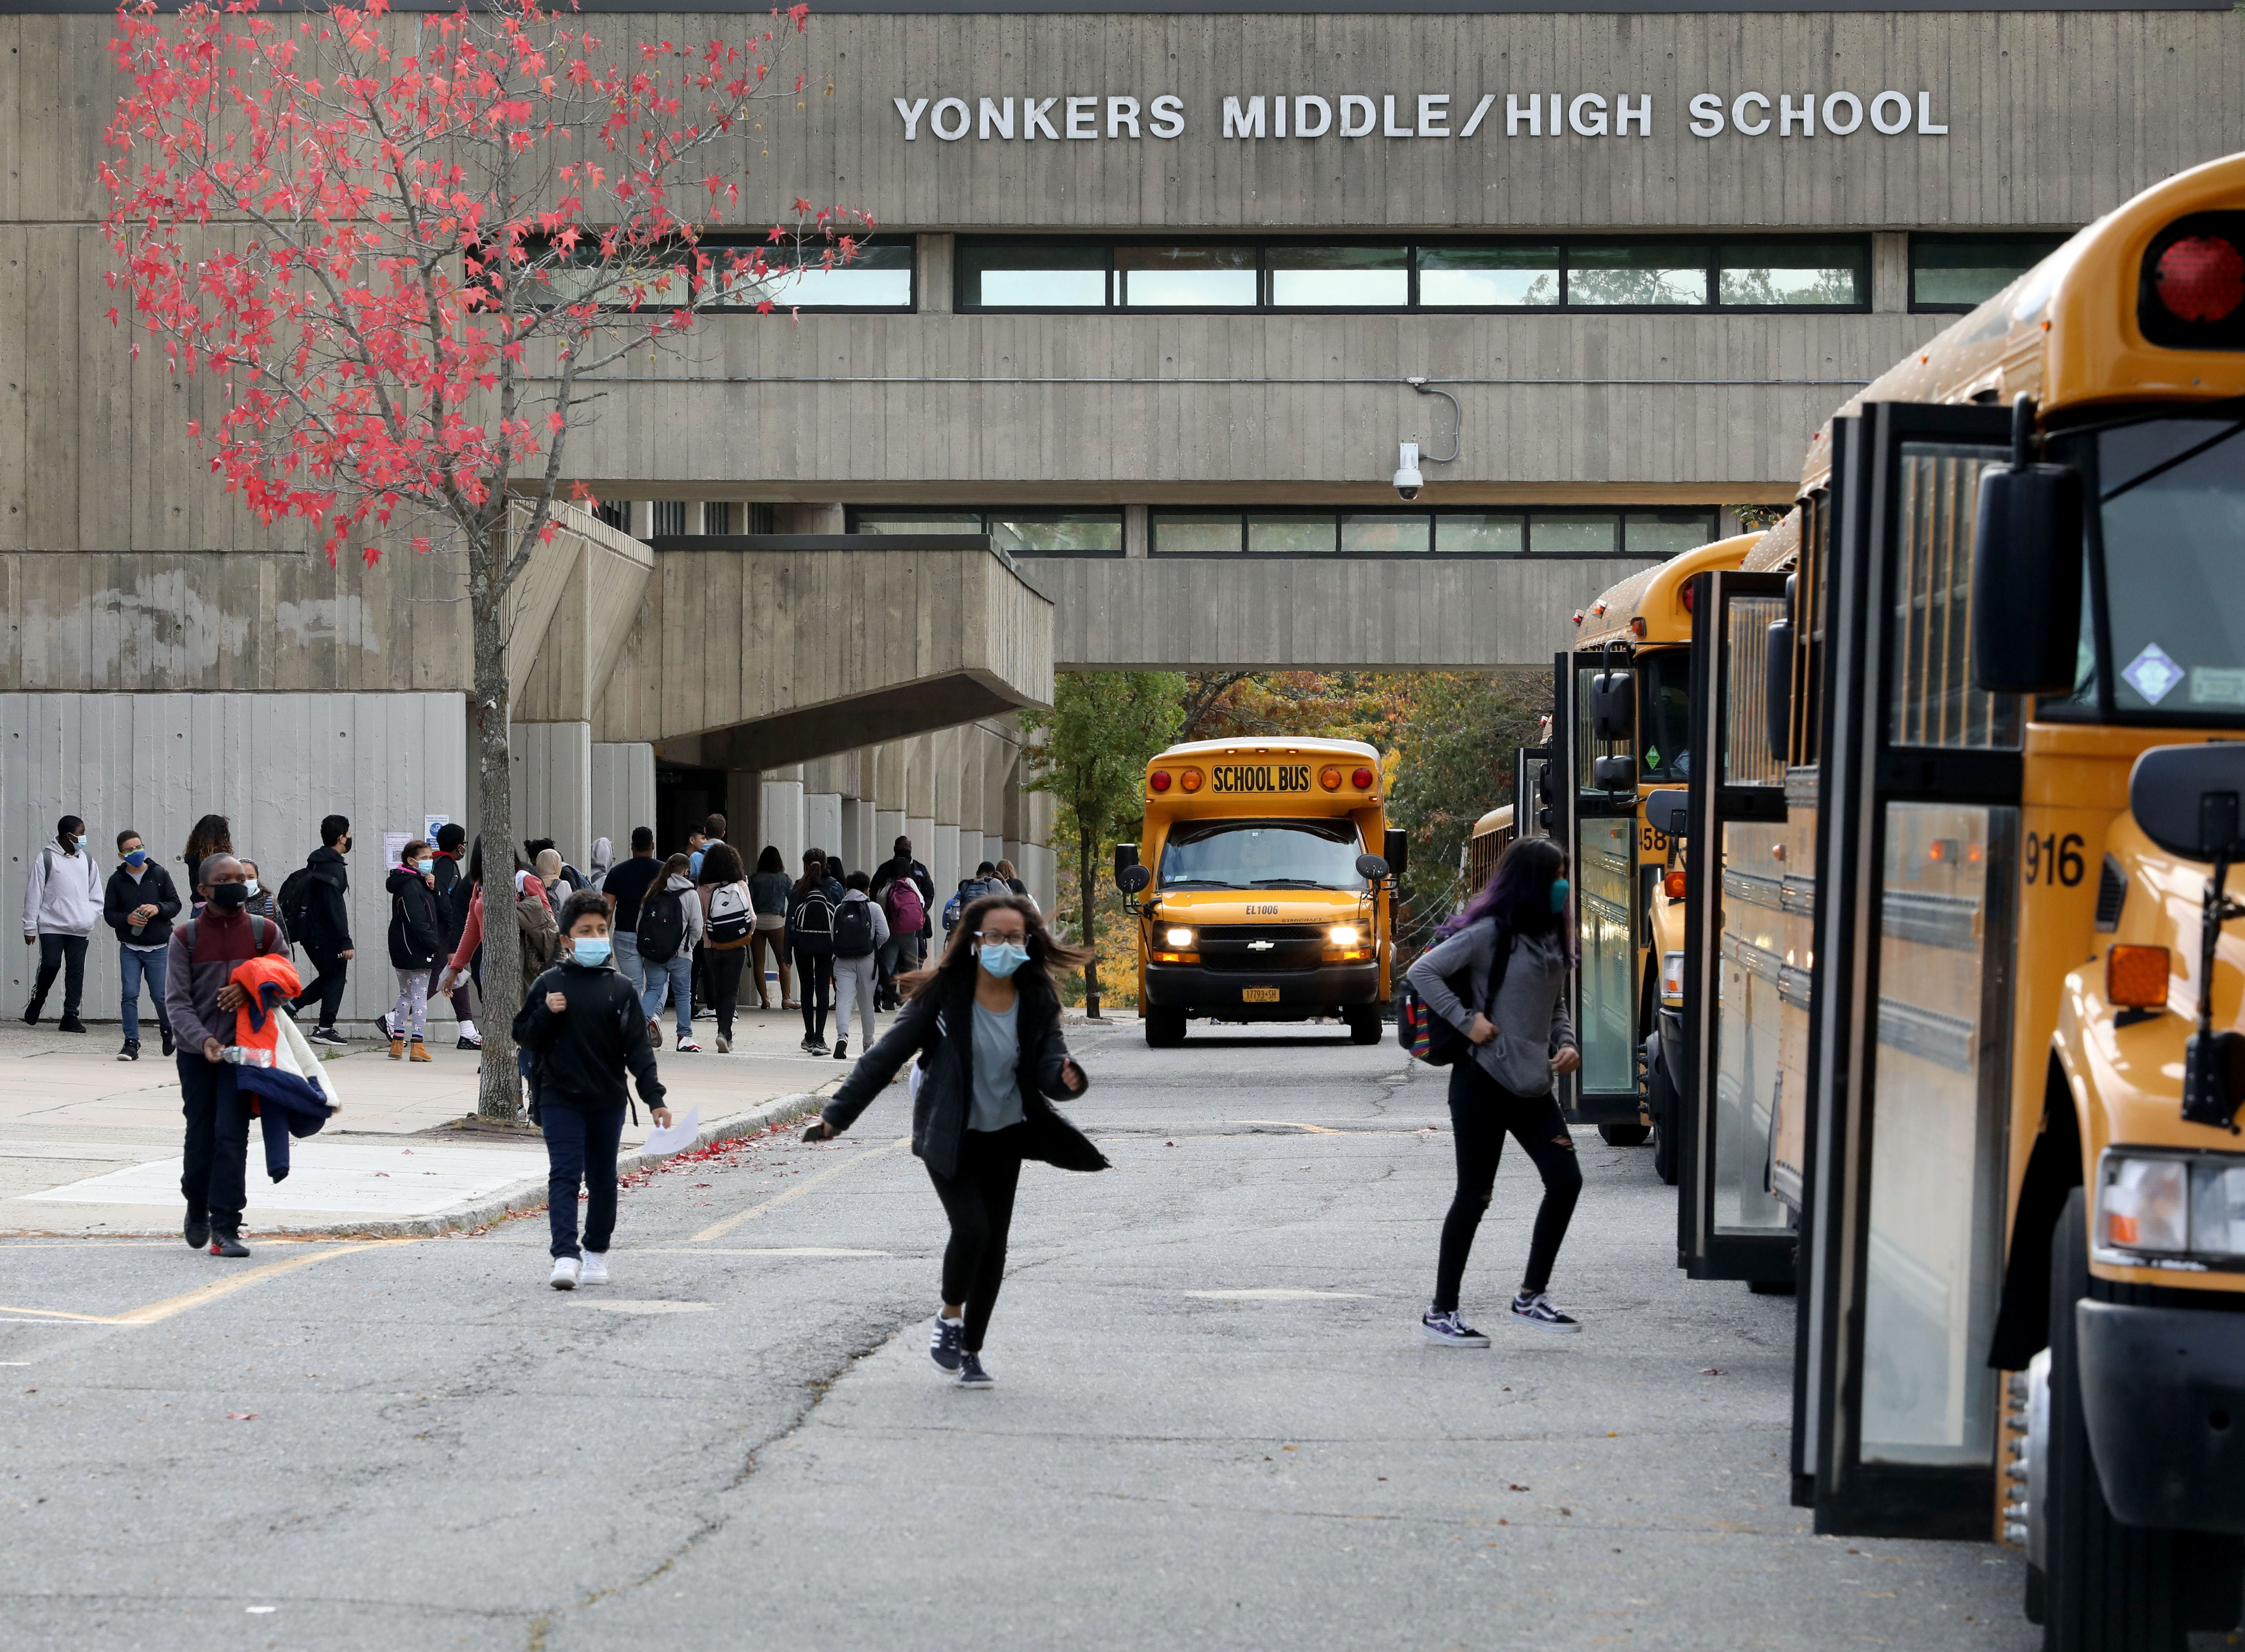 Students run toward their school busses after dismissal at Yonkers Middle High School, Oct. 27, 2020.Yonkers School Dismissal